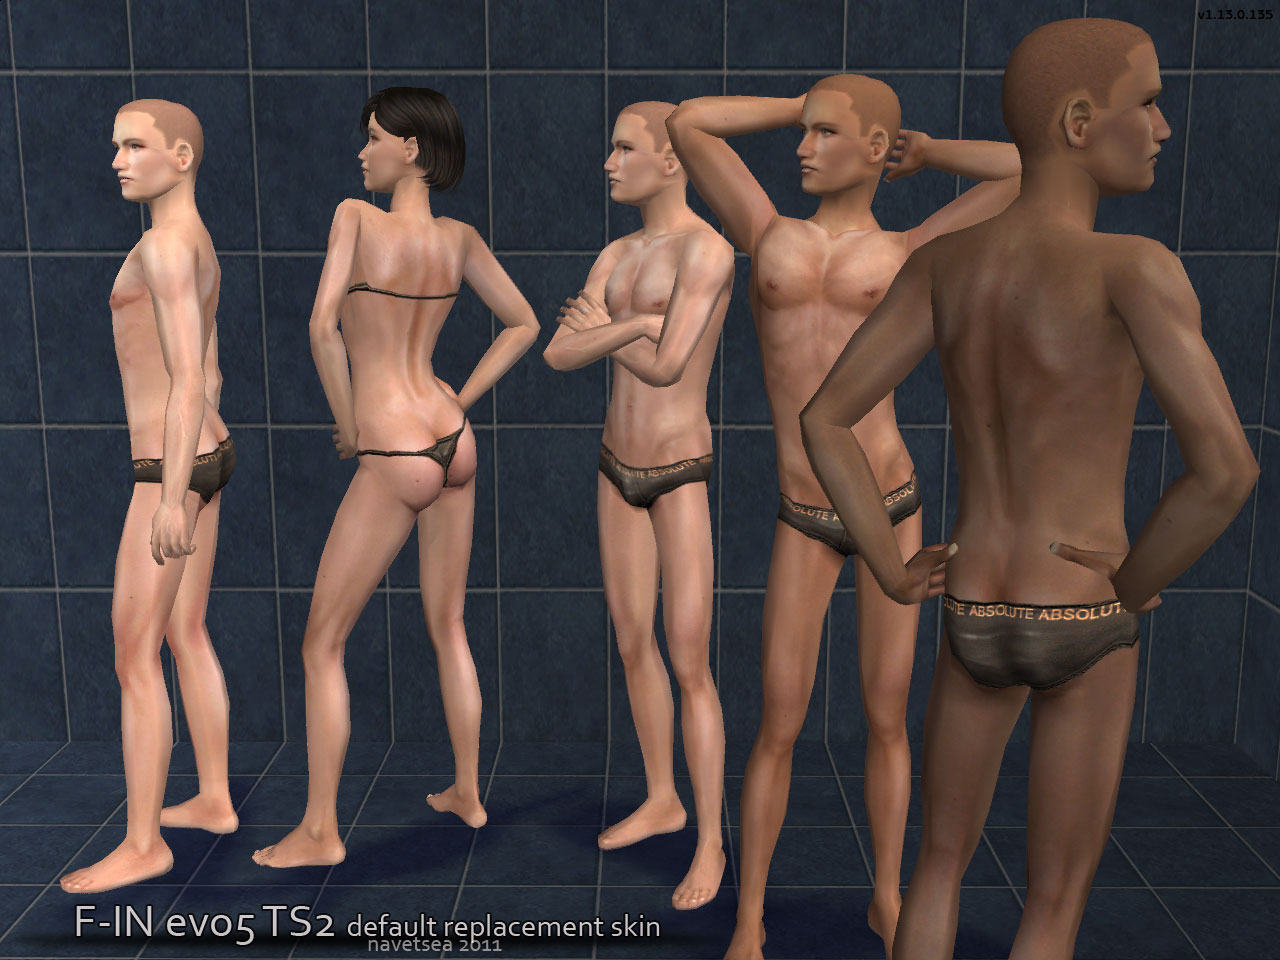 Nude skins for the sims porn homemade stripper